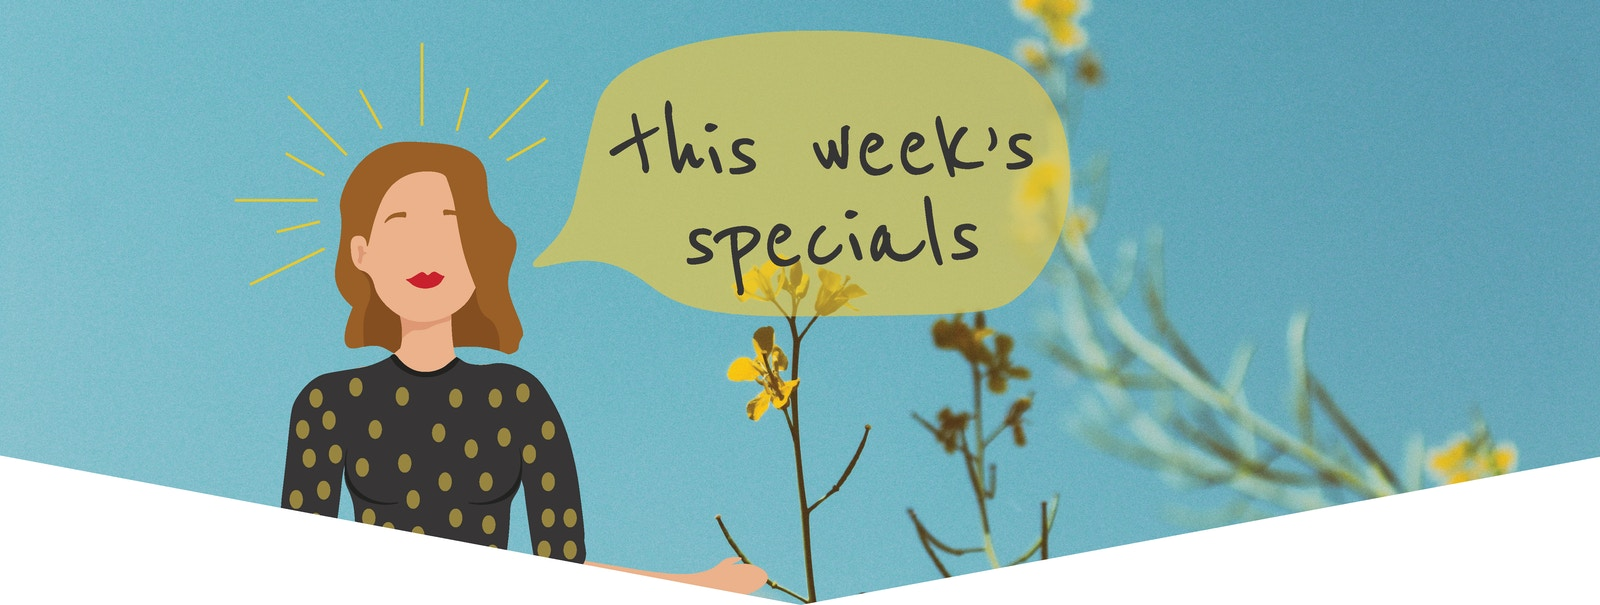 Illustration of woman saying this weeks specials